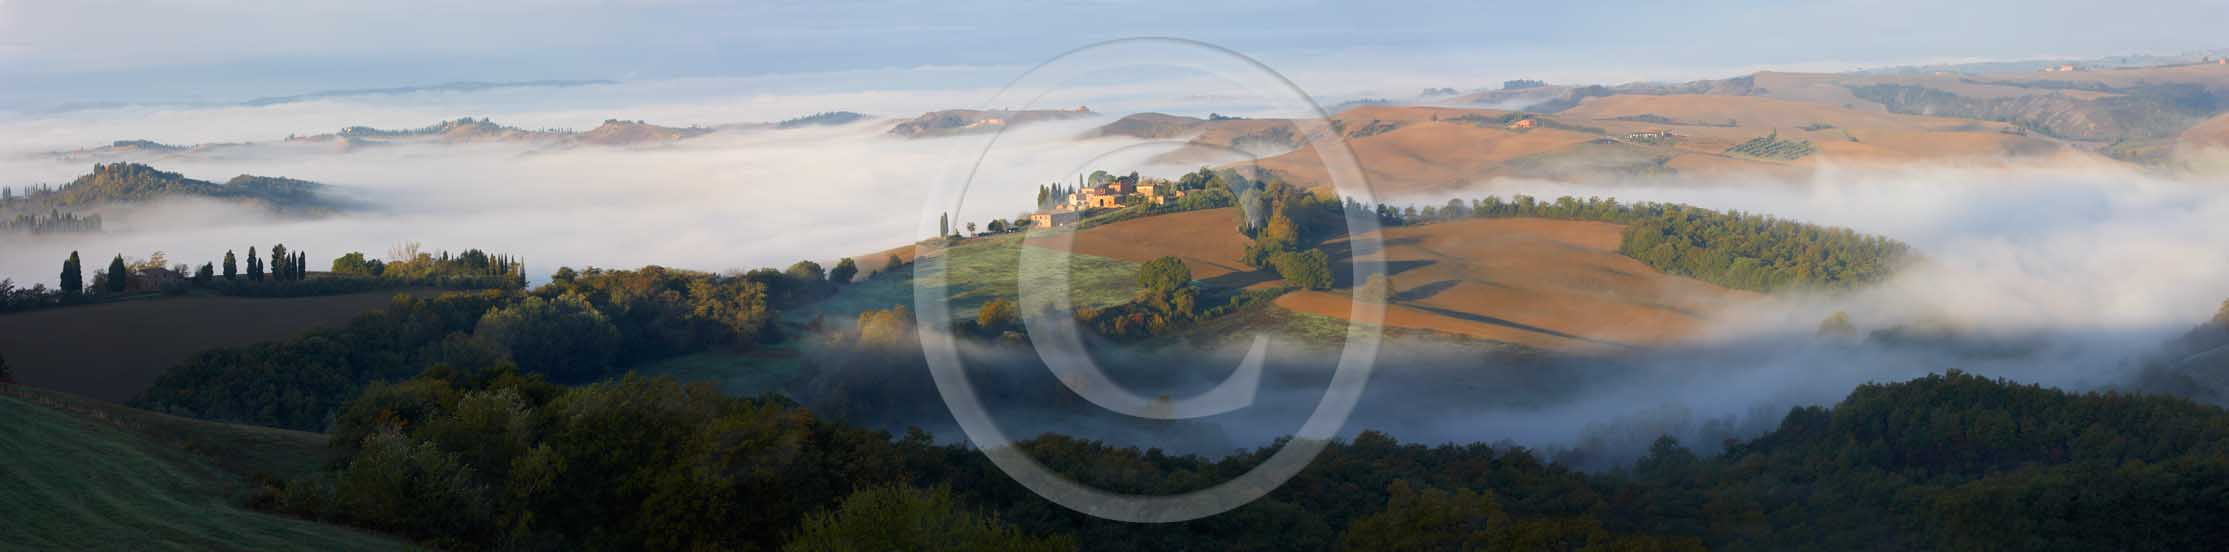 2008 - Panoramic view of landscapes and farm with fog on sunrise in winter, Montemori place, near Asciano village, Crete Senesi land, 18 miles south province of Siena.<br />